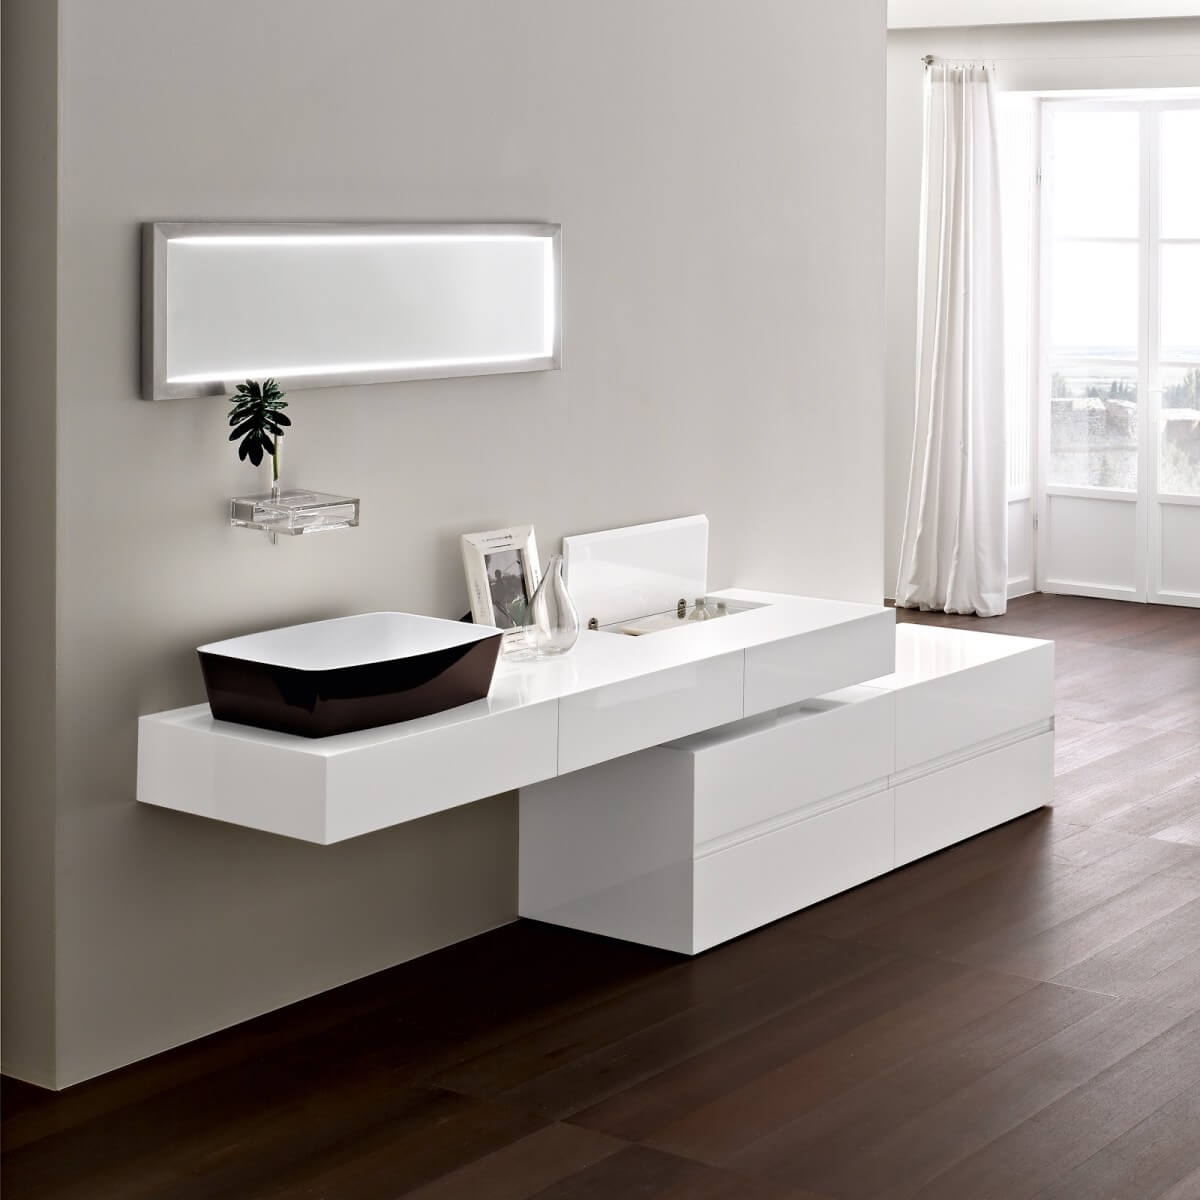 Charmant Furniture For Bathroom Design